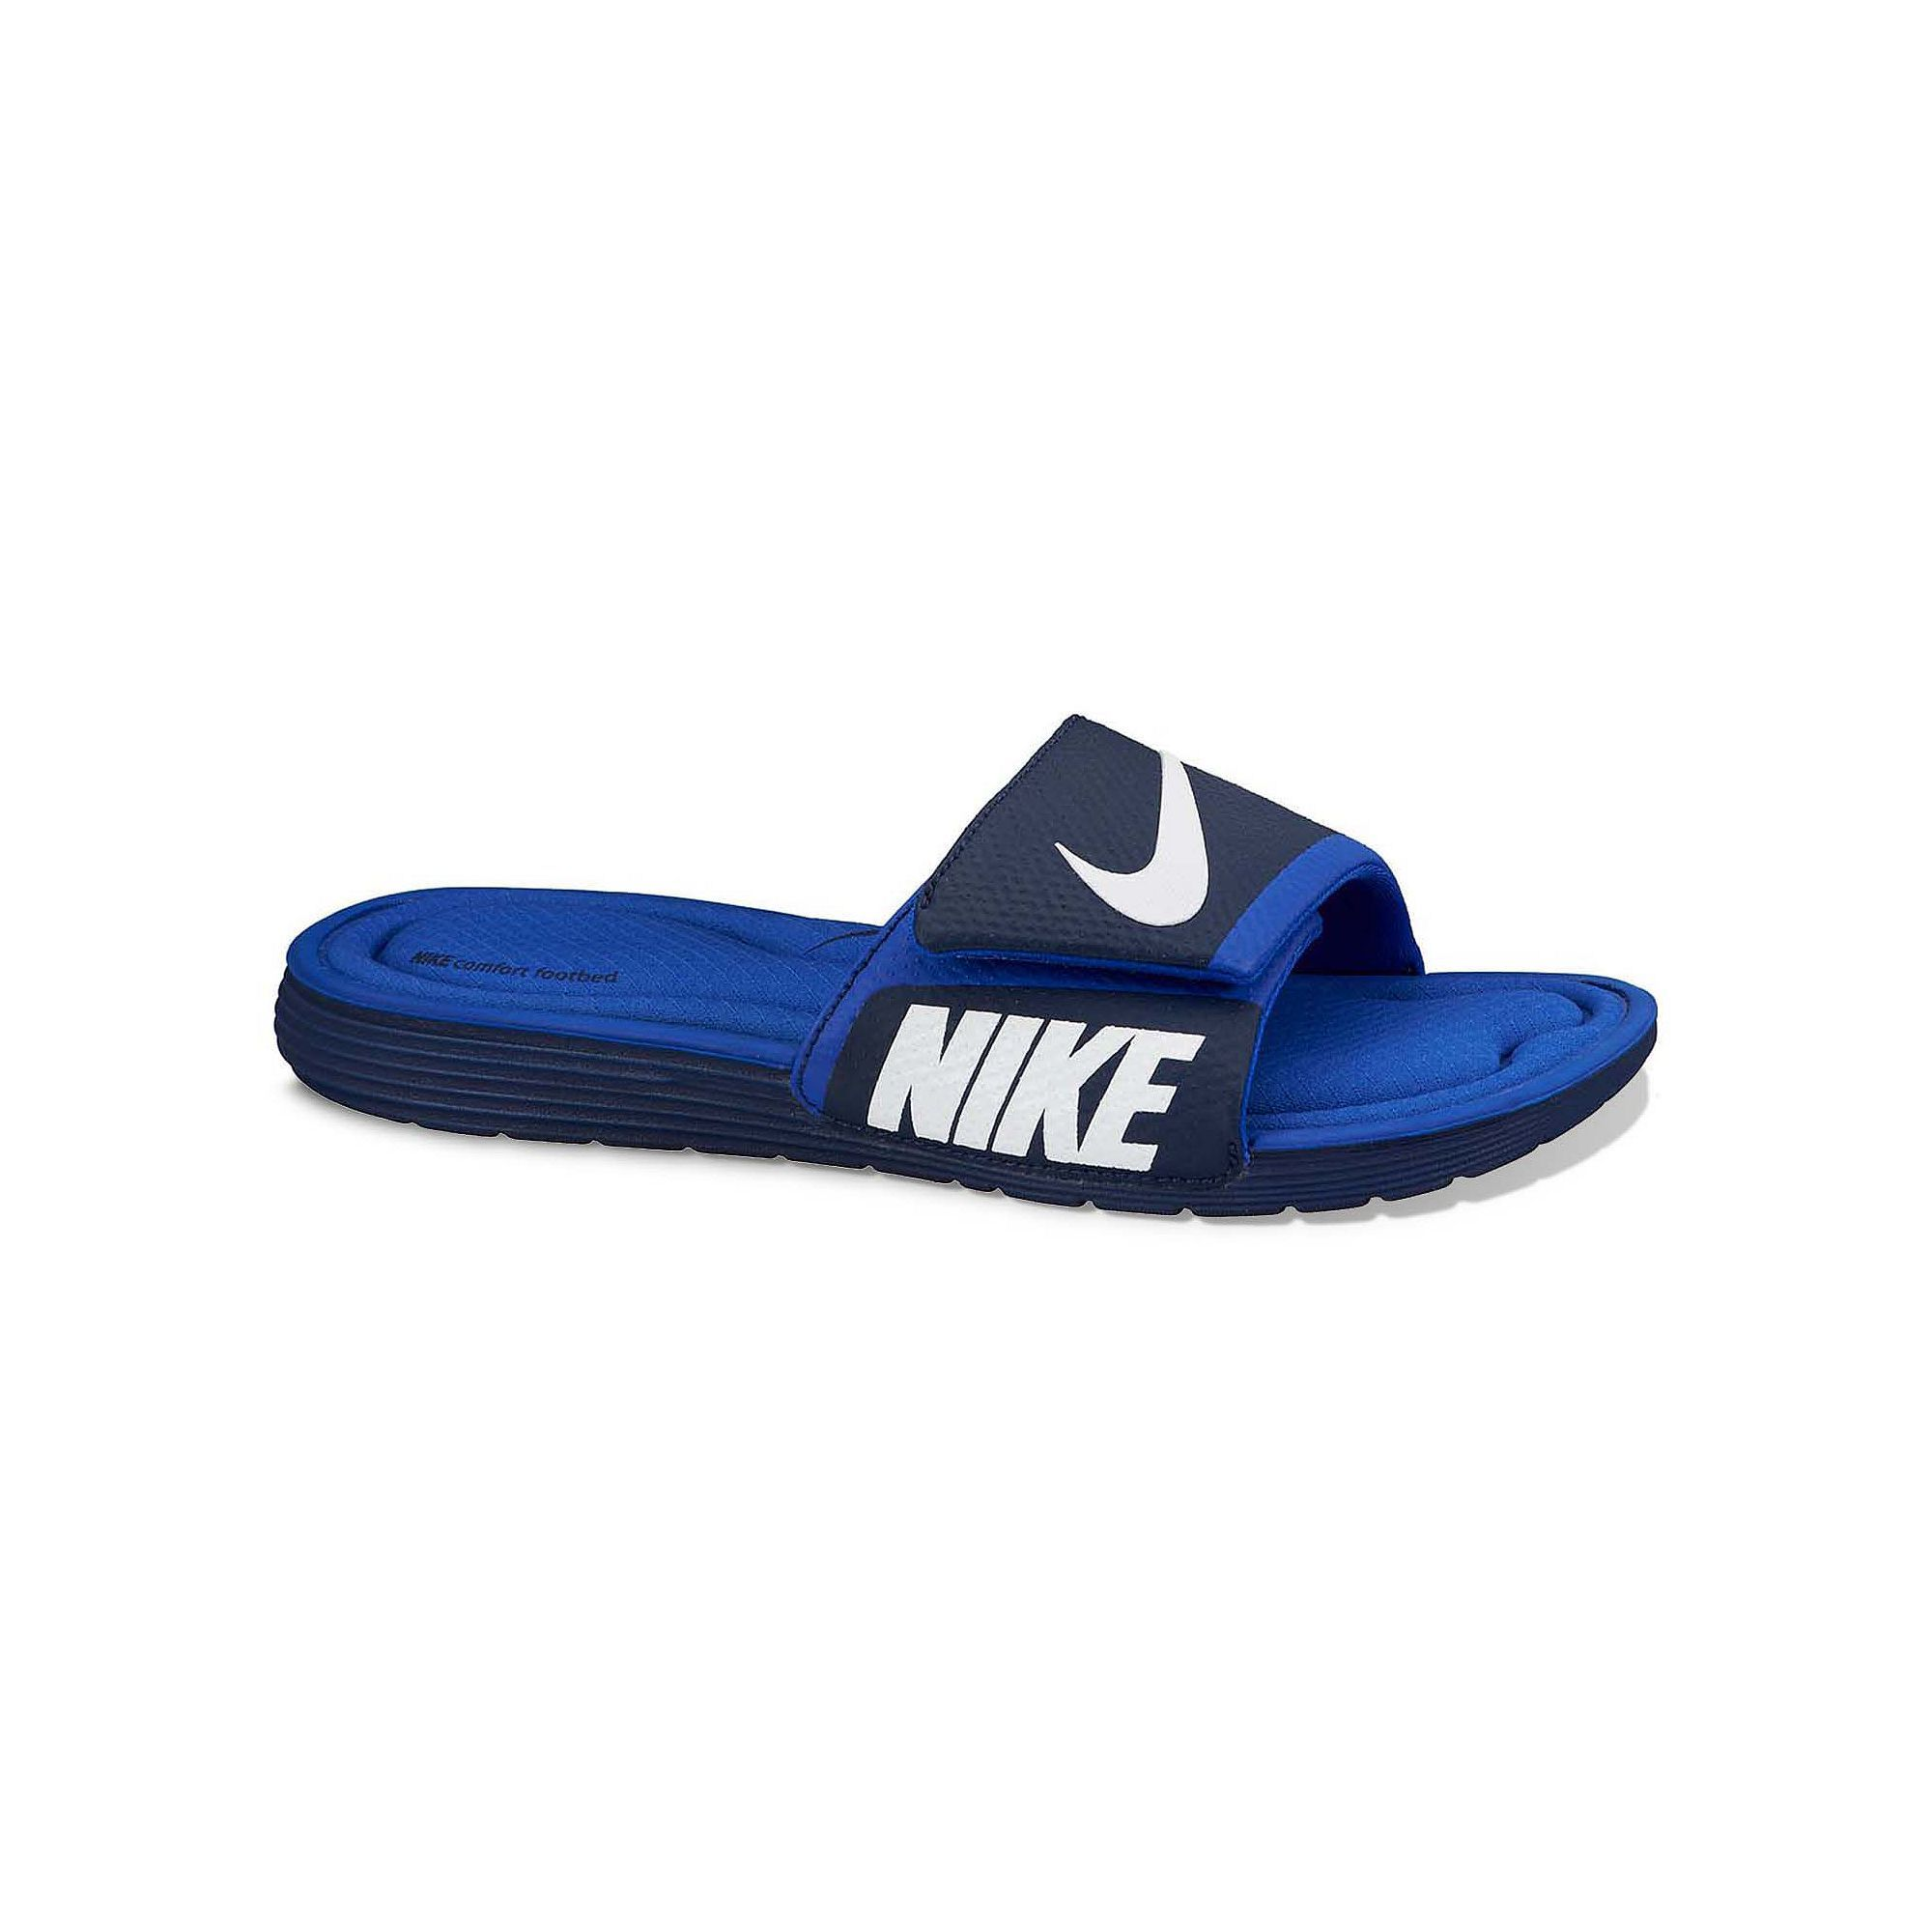 1c9cc36dc855ae Nike Solarsoft Men s Comfort Slide Sandals